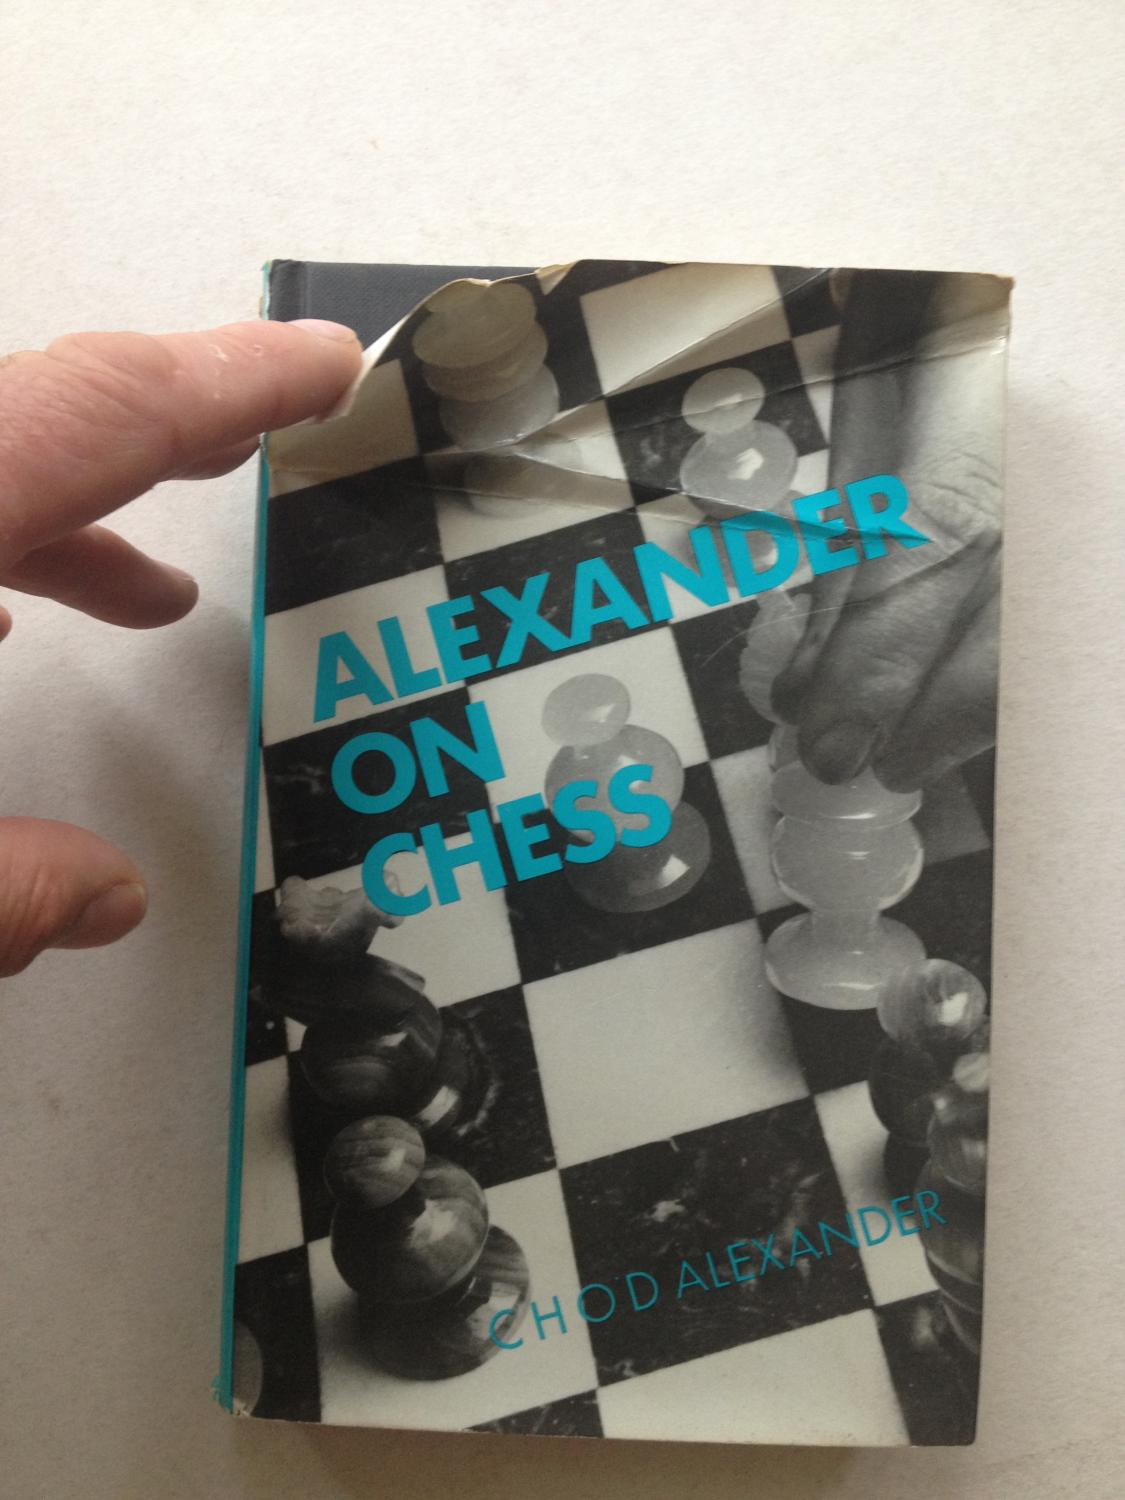 Alexander on Chess, CHO'D Alexander, Pitman, 1974